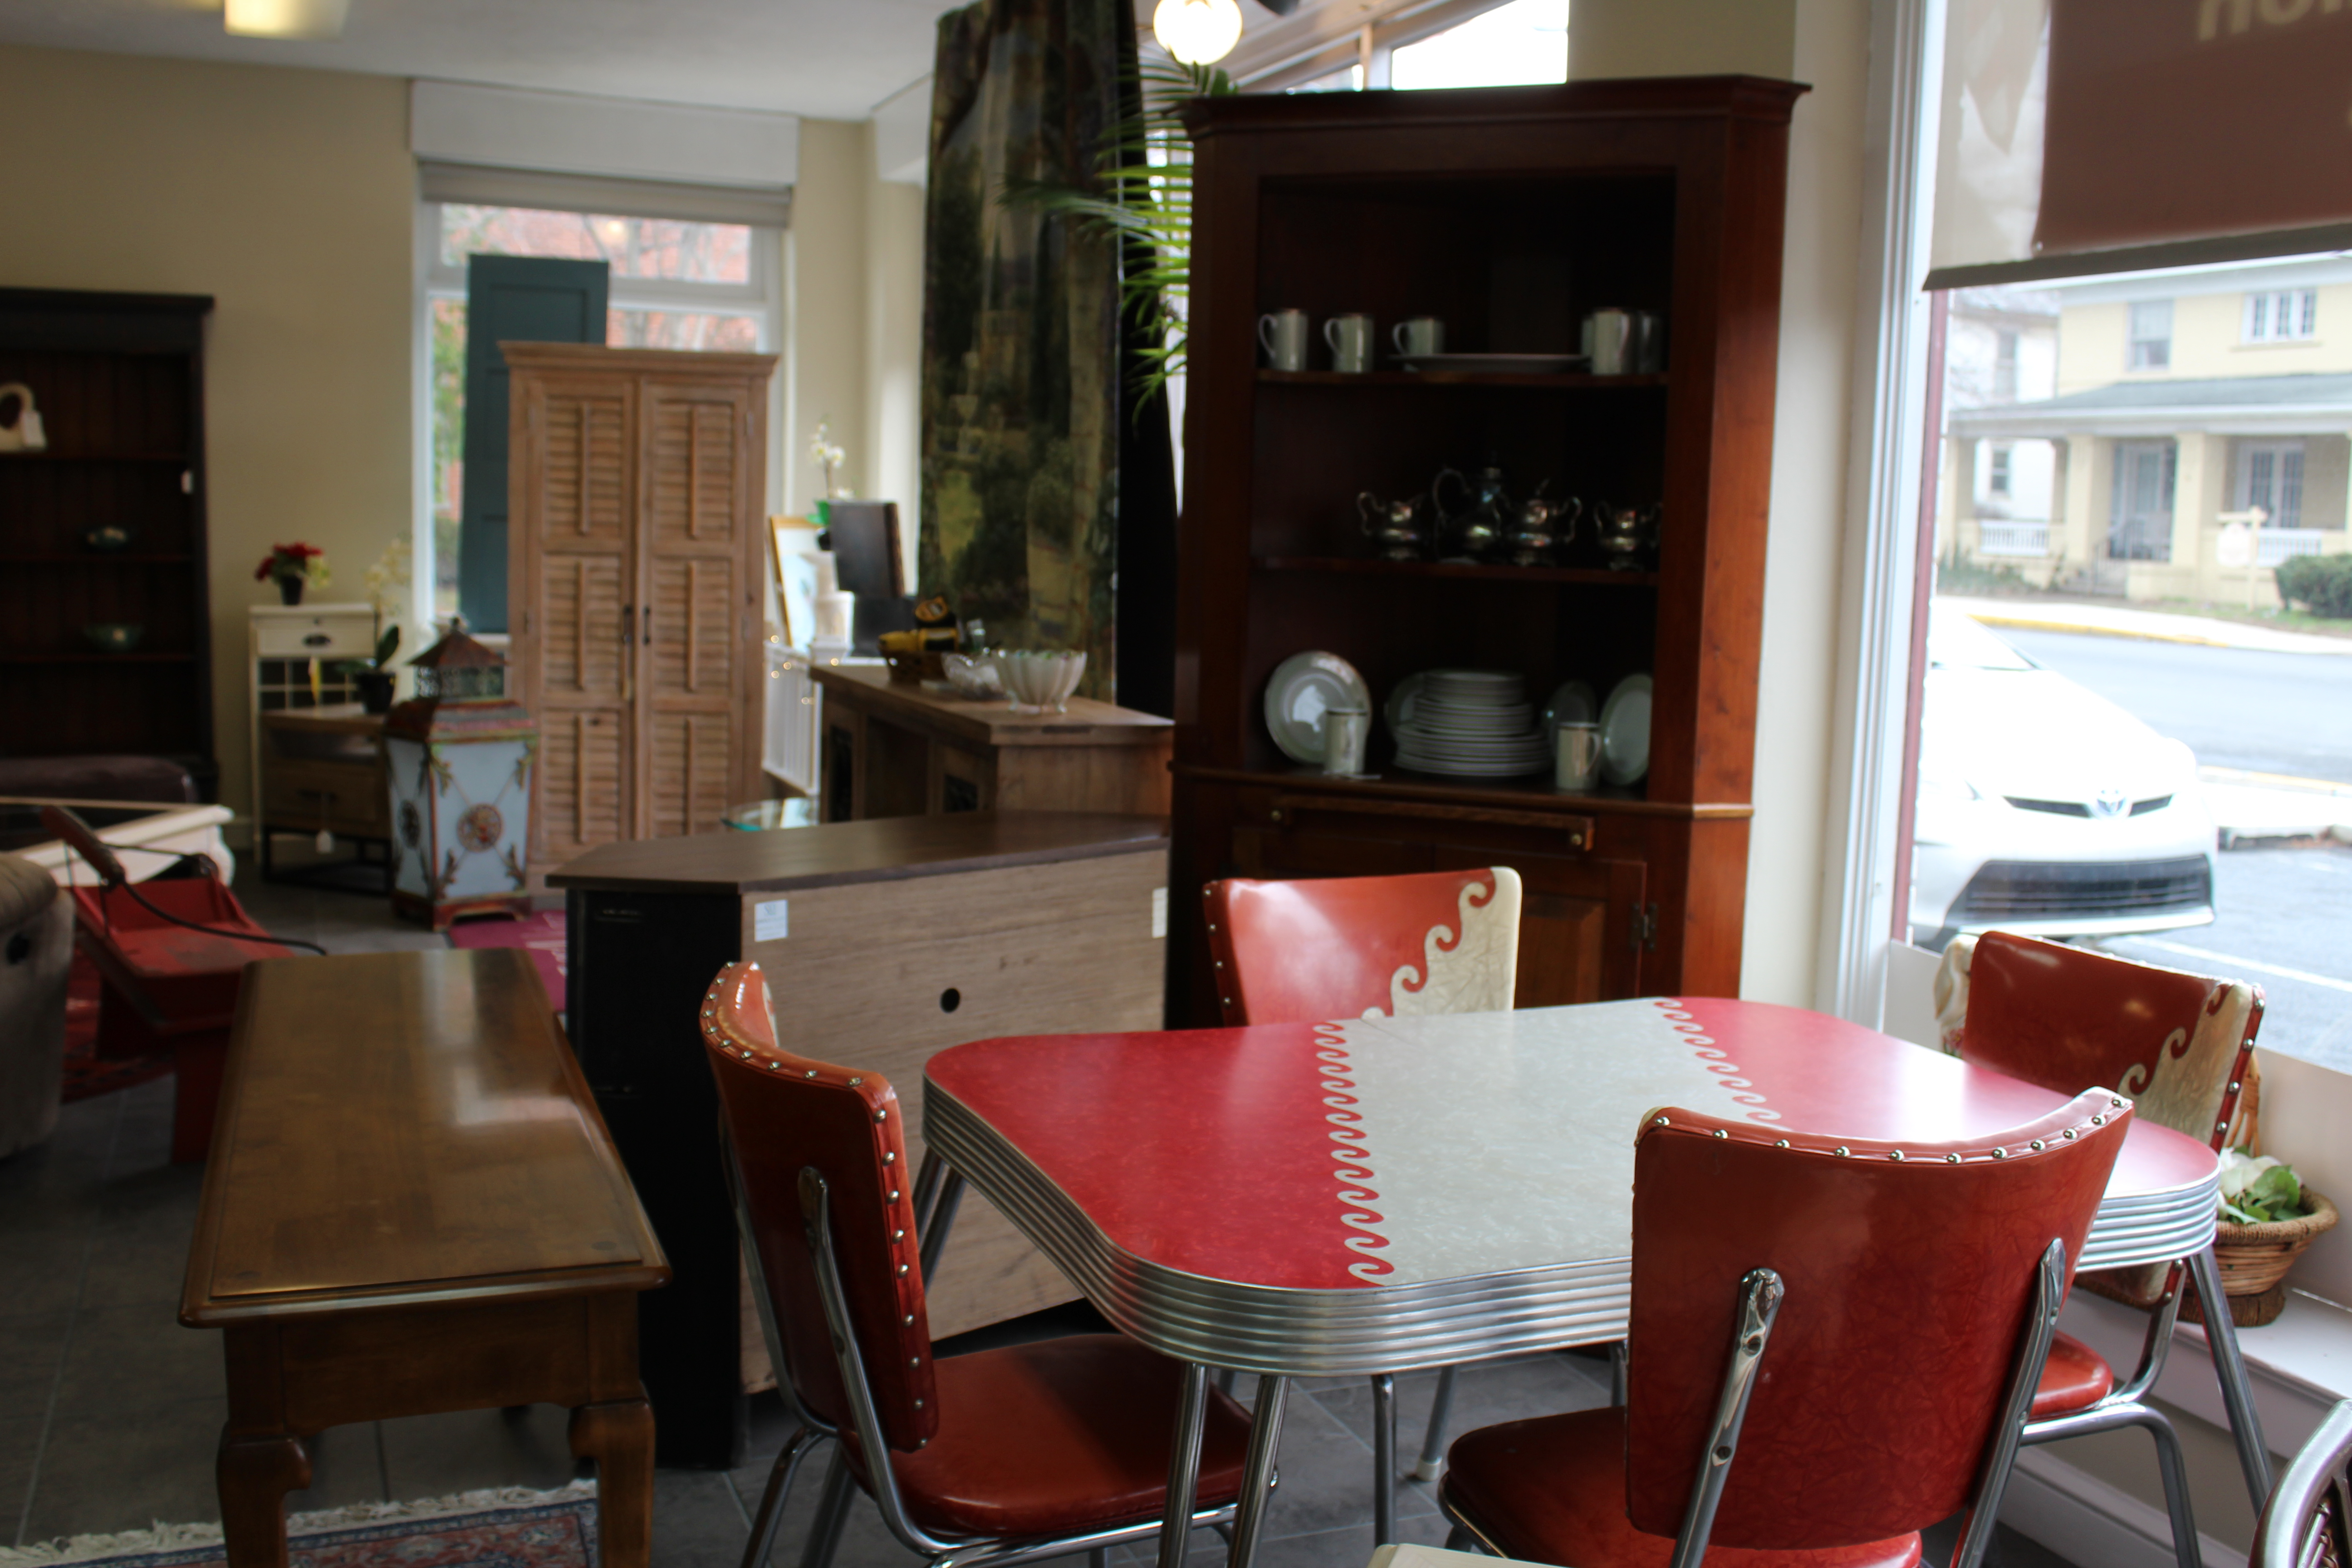 Furniture4U of Lititz Fine Used Furniture antiques art deco living room dining room bedroom kitchen décor accessories modern shabby chic chairs shelving desks storage chests amish furniture jewelry